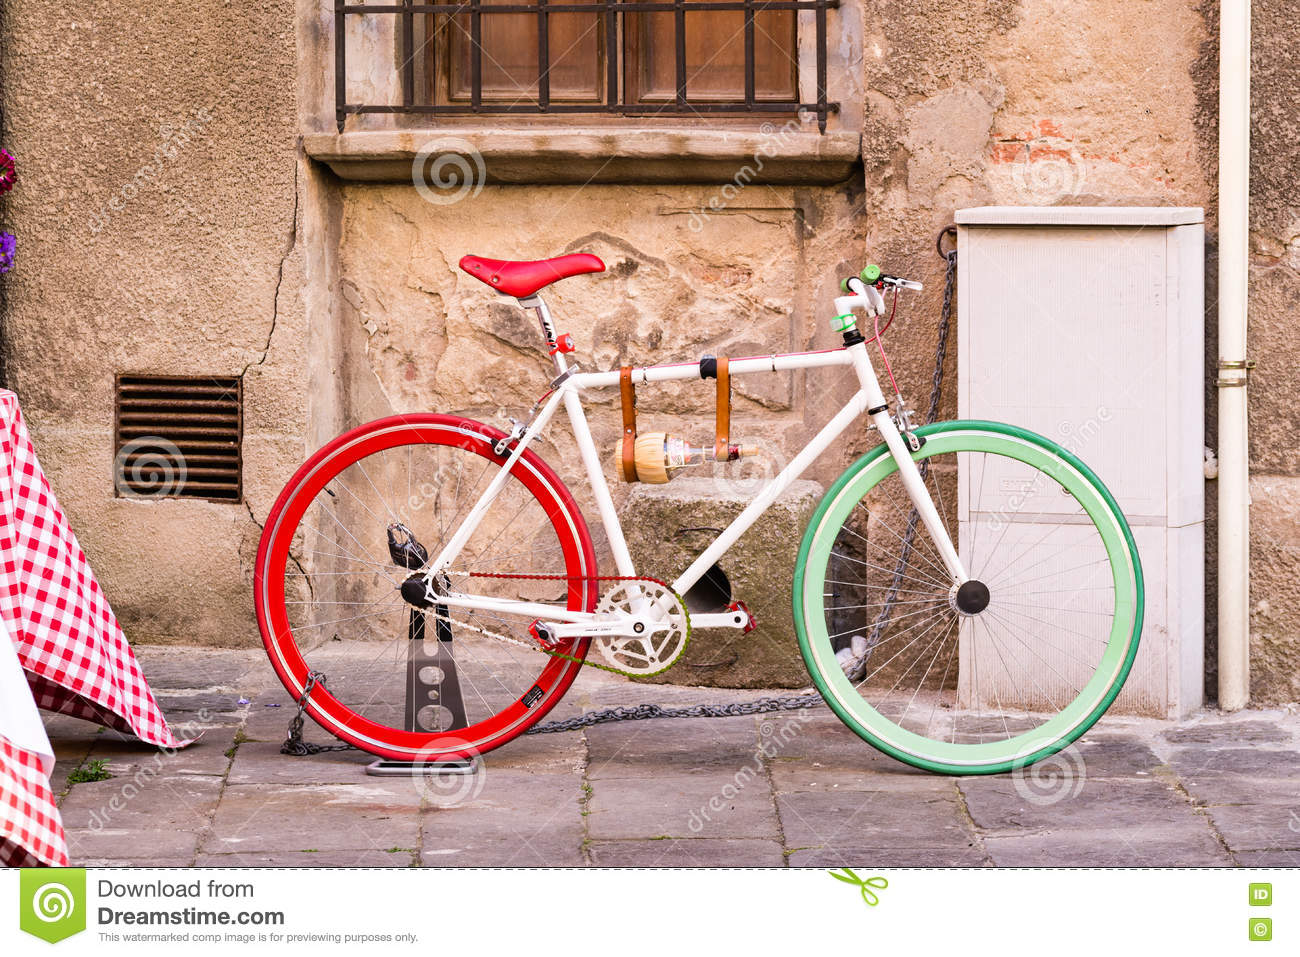 A bicycle with the colors of the Italian flag next to a wall in